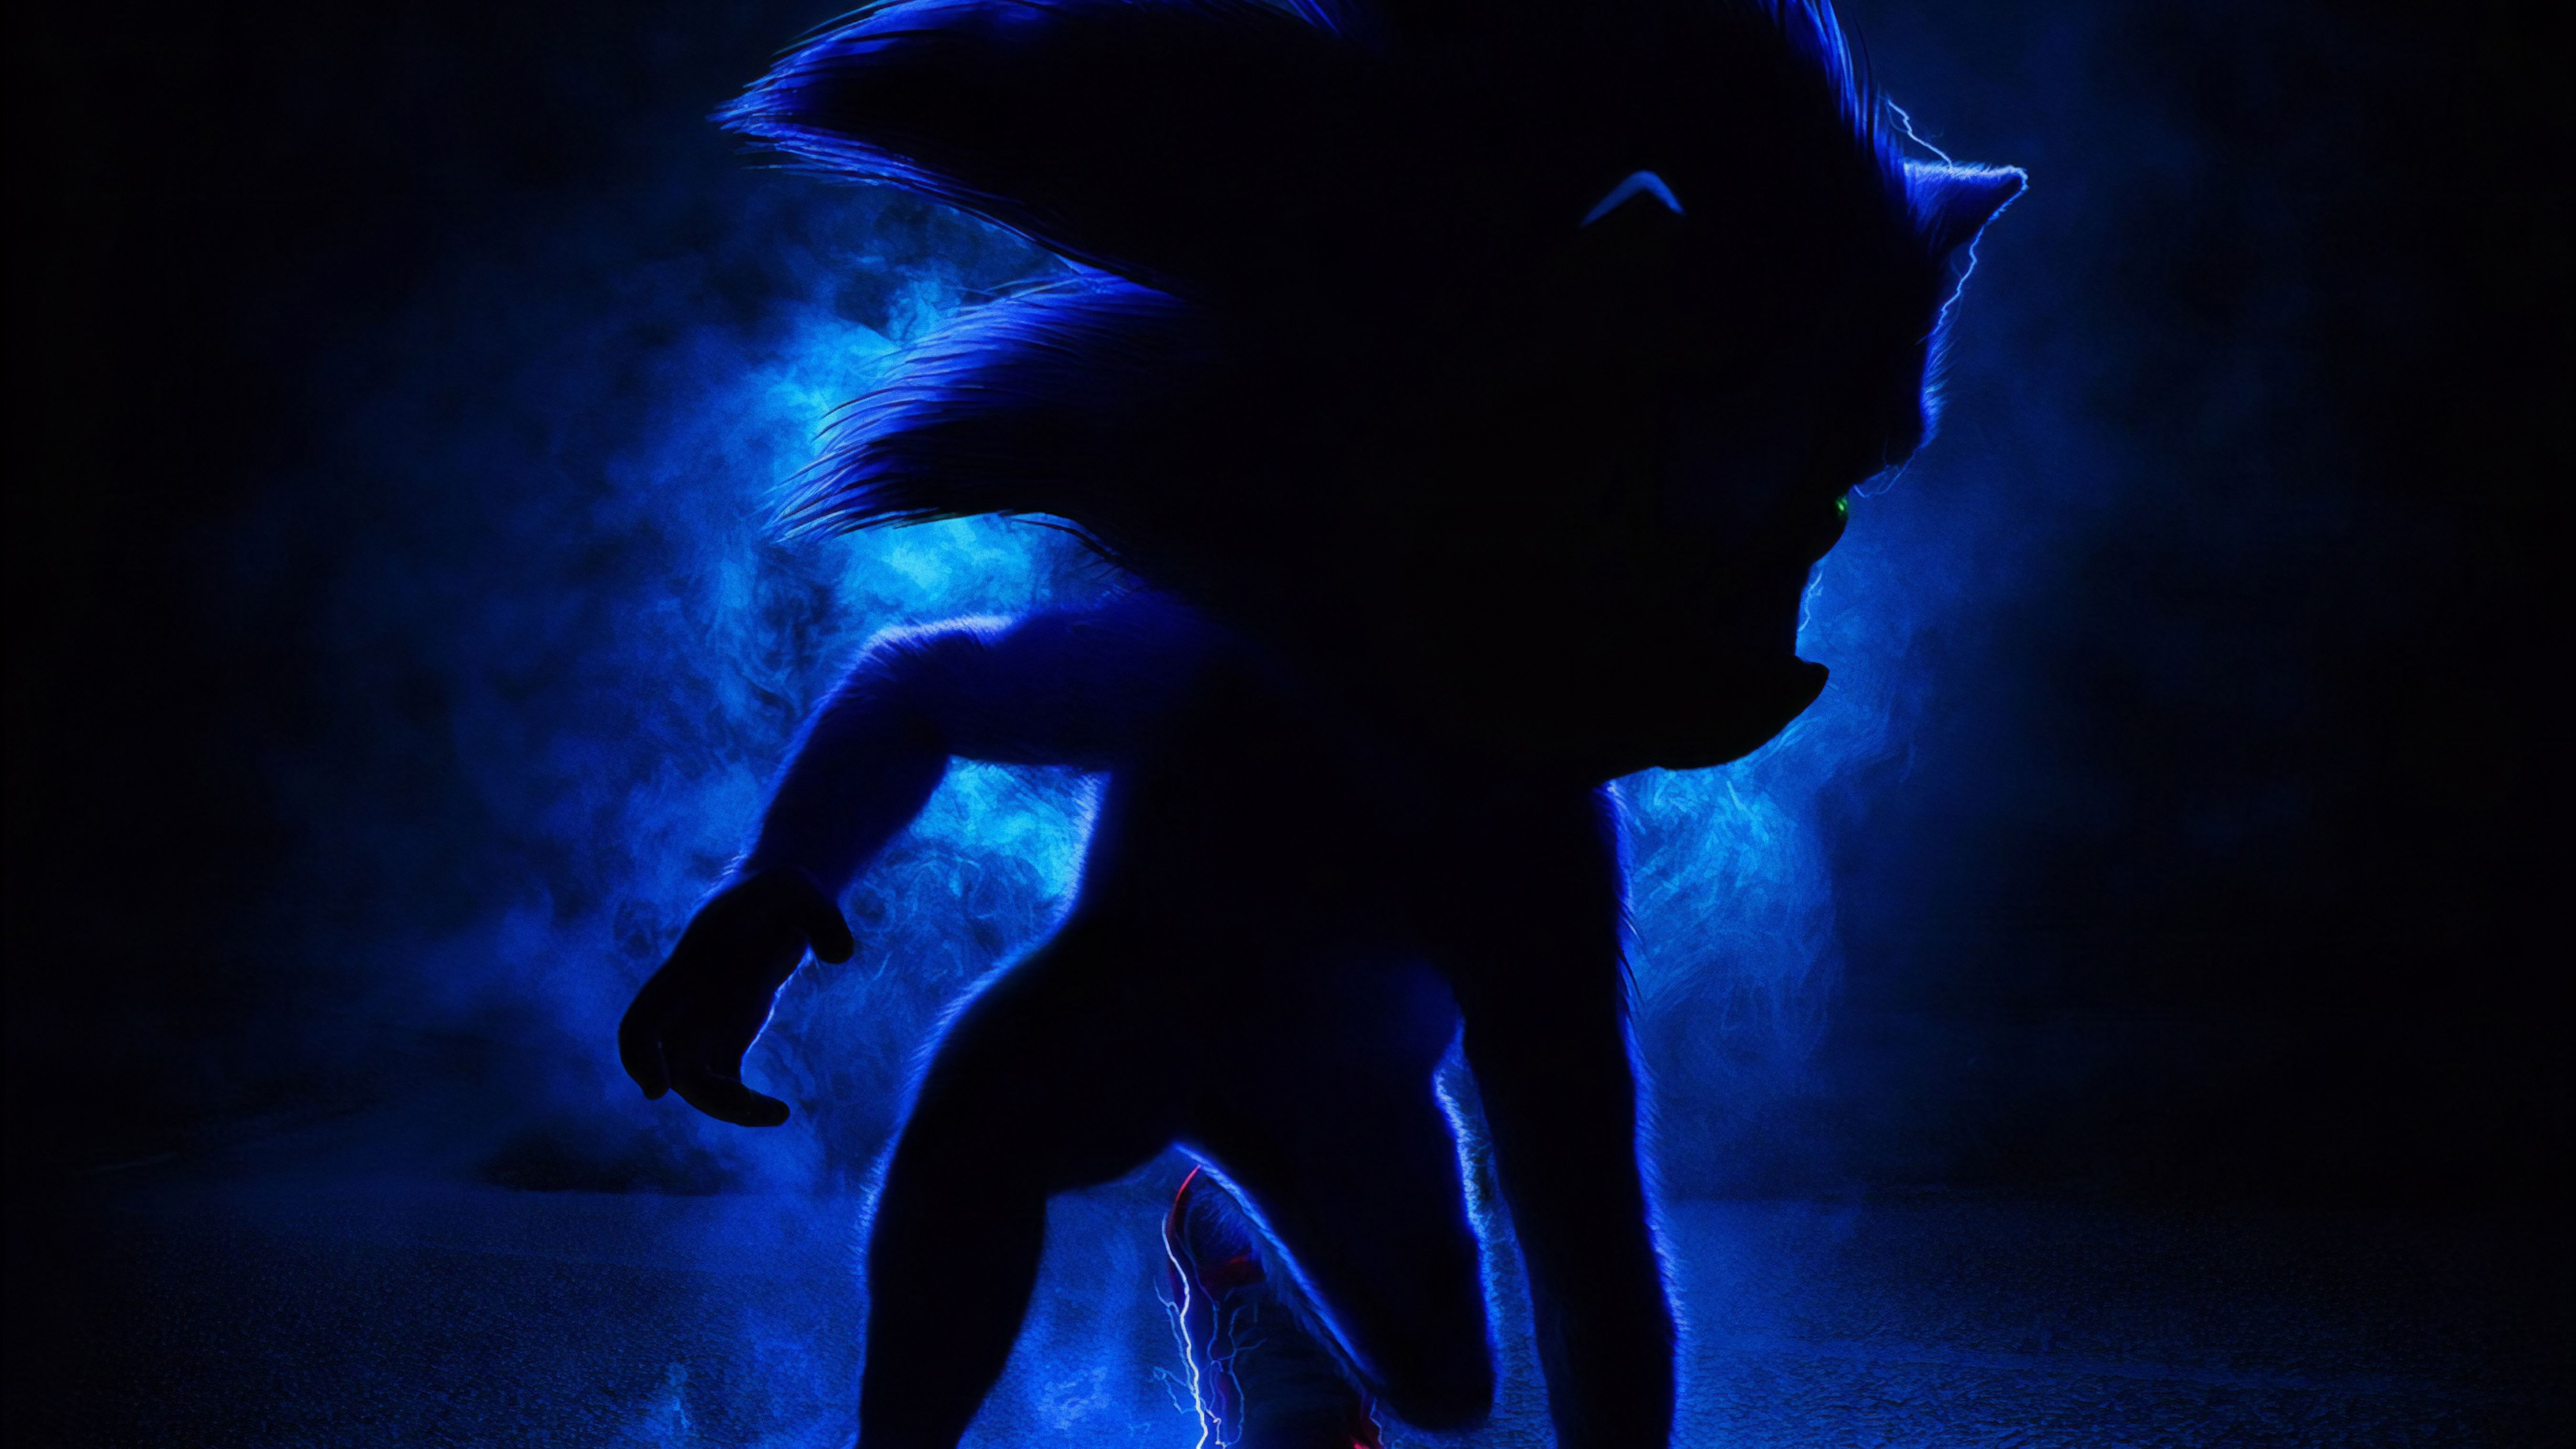 Sonic Movie Wallpapers Top Free Sonic Movie Backgrounds Wallpaperaccess